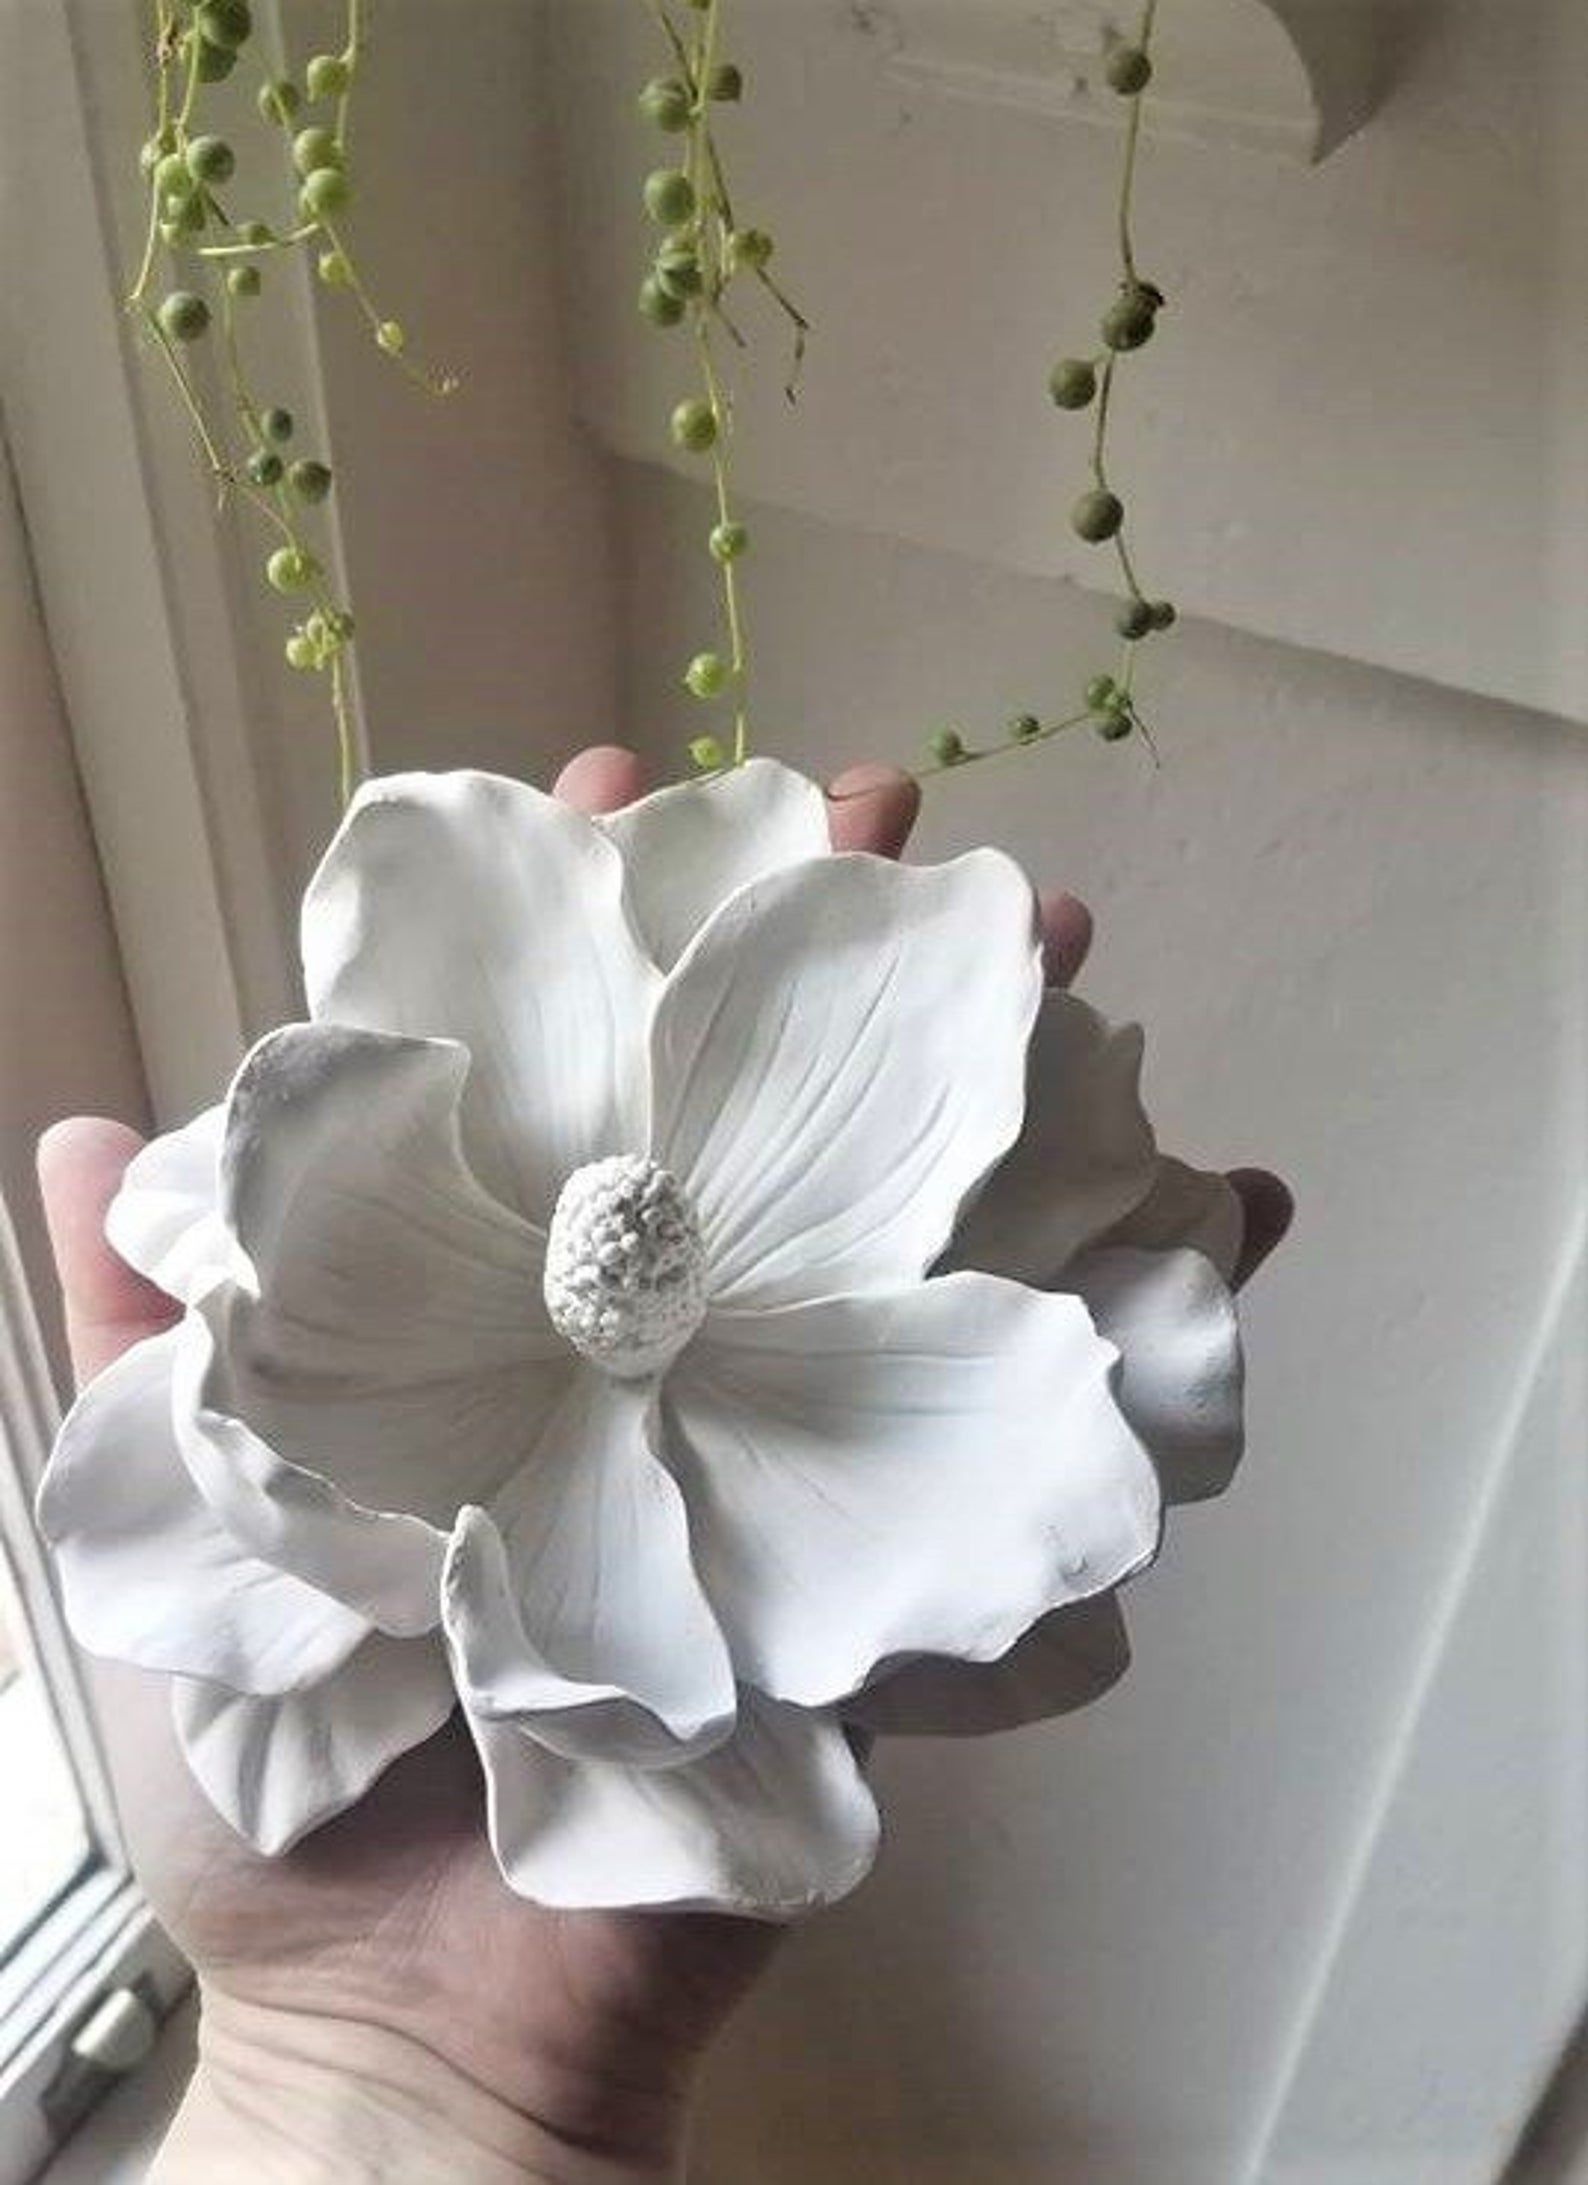 Floral Wall Decor Spring Decor Realistic Wall Flowers Mothers Day Gift Magnolia Wall Flowers Garden Nursery Decor Big Flowers In 2021 Floral Wall Decor Flower Wall Flower Sculptures